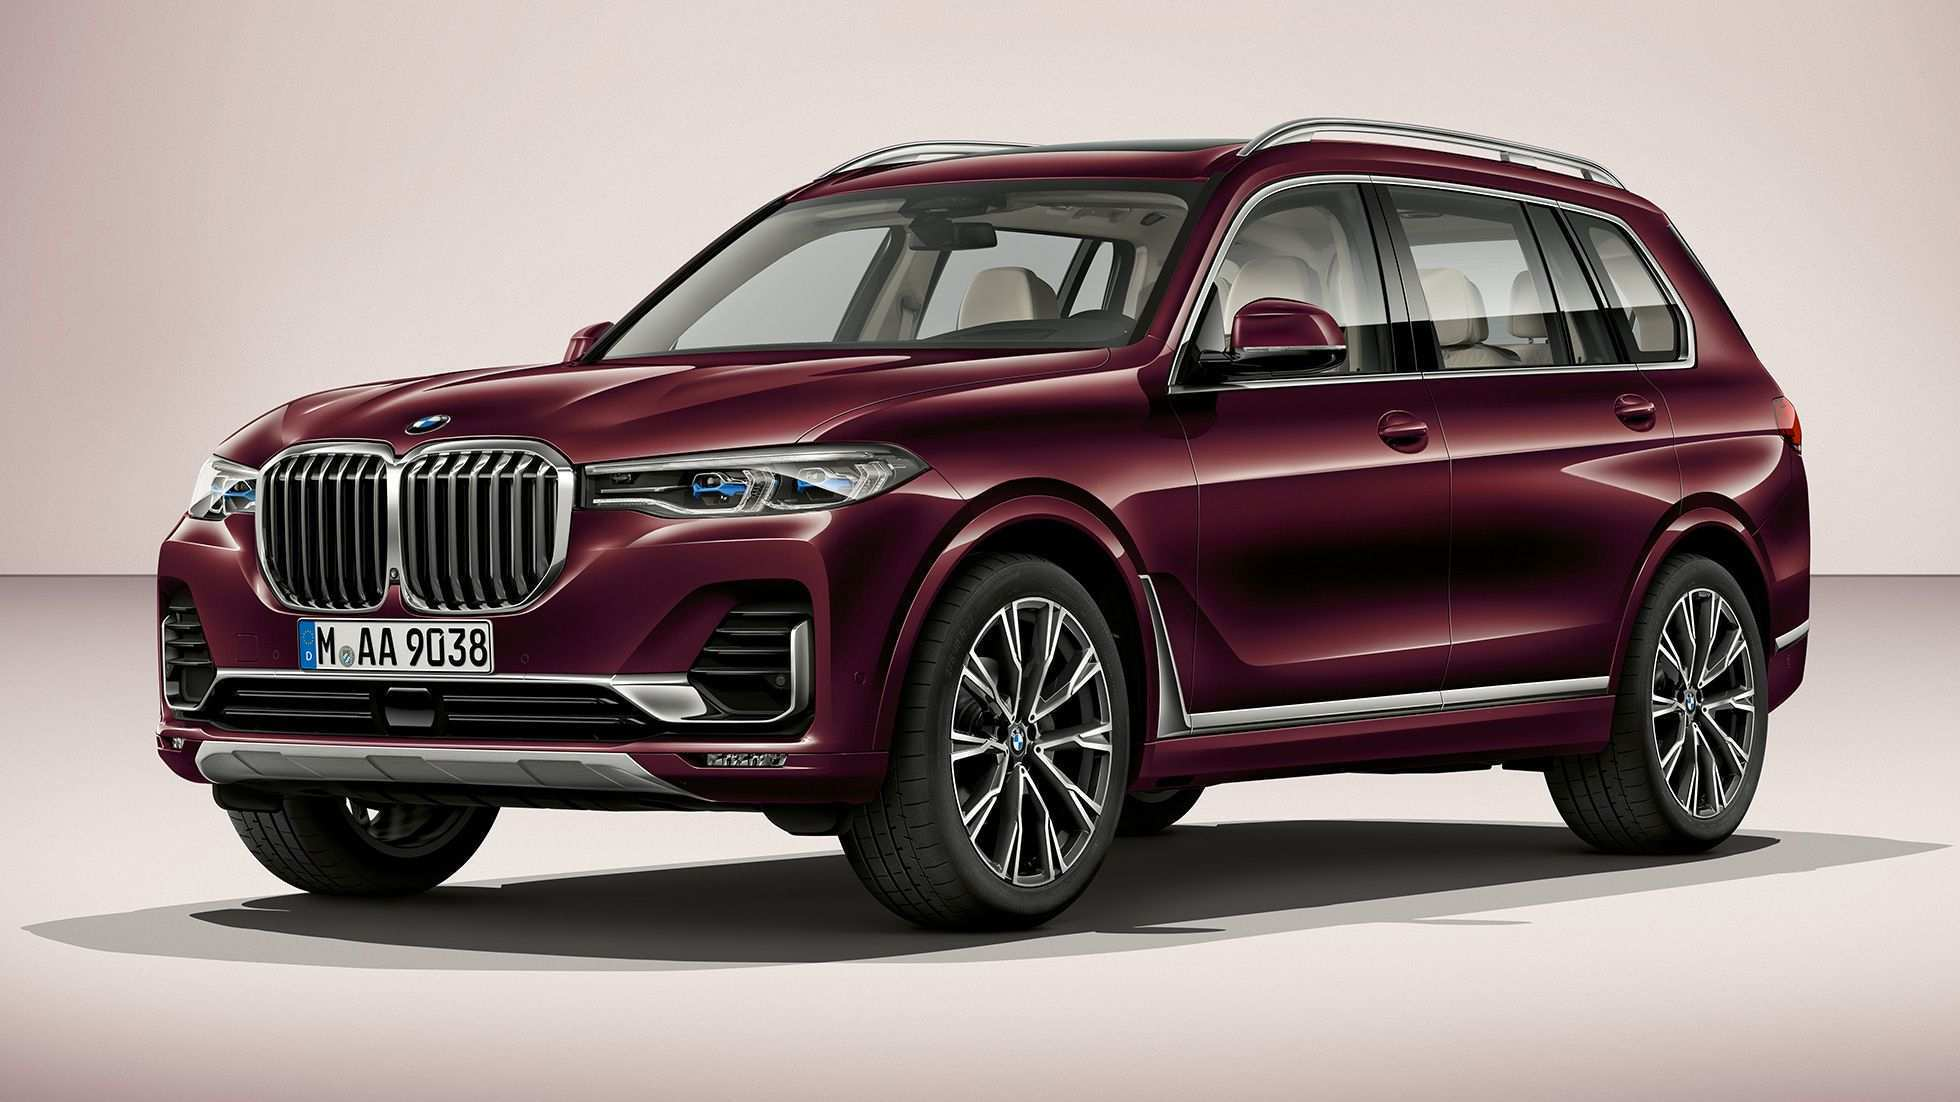 56 The 2020 BMW X7 Suv Series Pictures